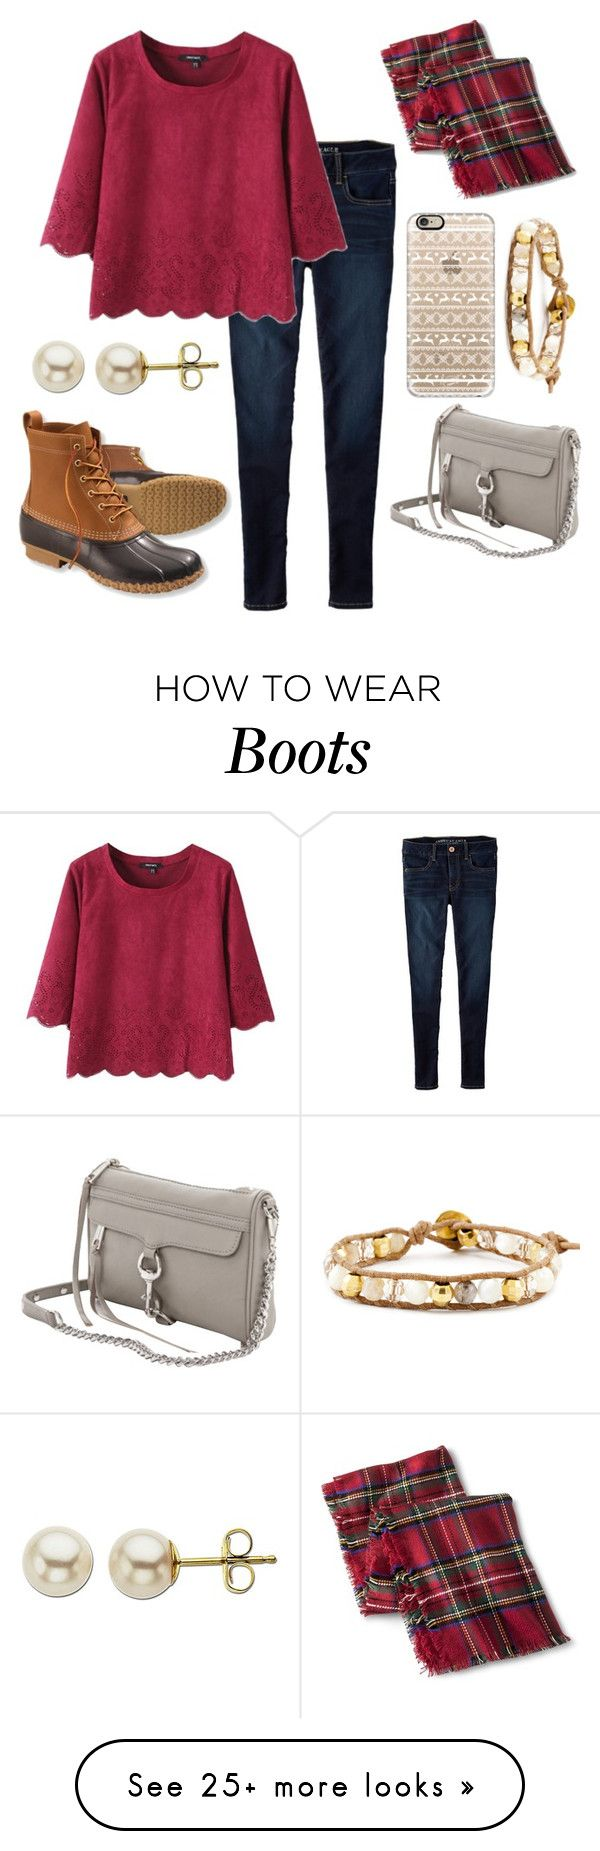 """""""bean boots & rebecca minkoff"""" by ansleighrose023 on Polyvore featuring American Eagle Outfitters, Merona, L.L.Bean, Casetify, Chan Luu, Rebecca Minkoff and Lord & Taylor"""